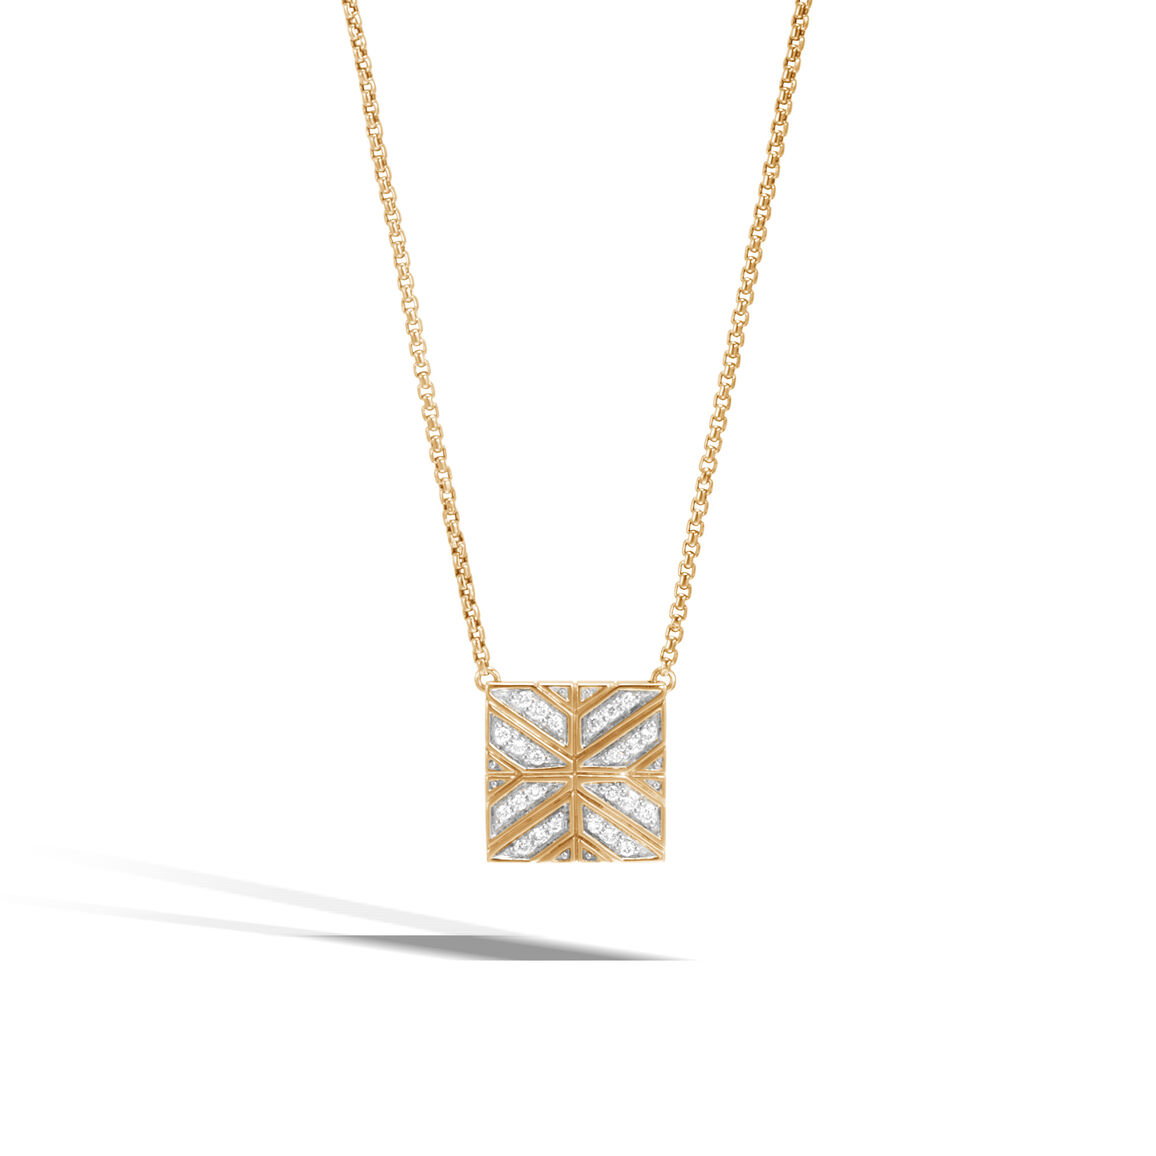 Modern Chain Pendant Necklace in 18K Gold with Diamonds